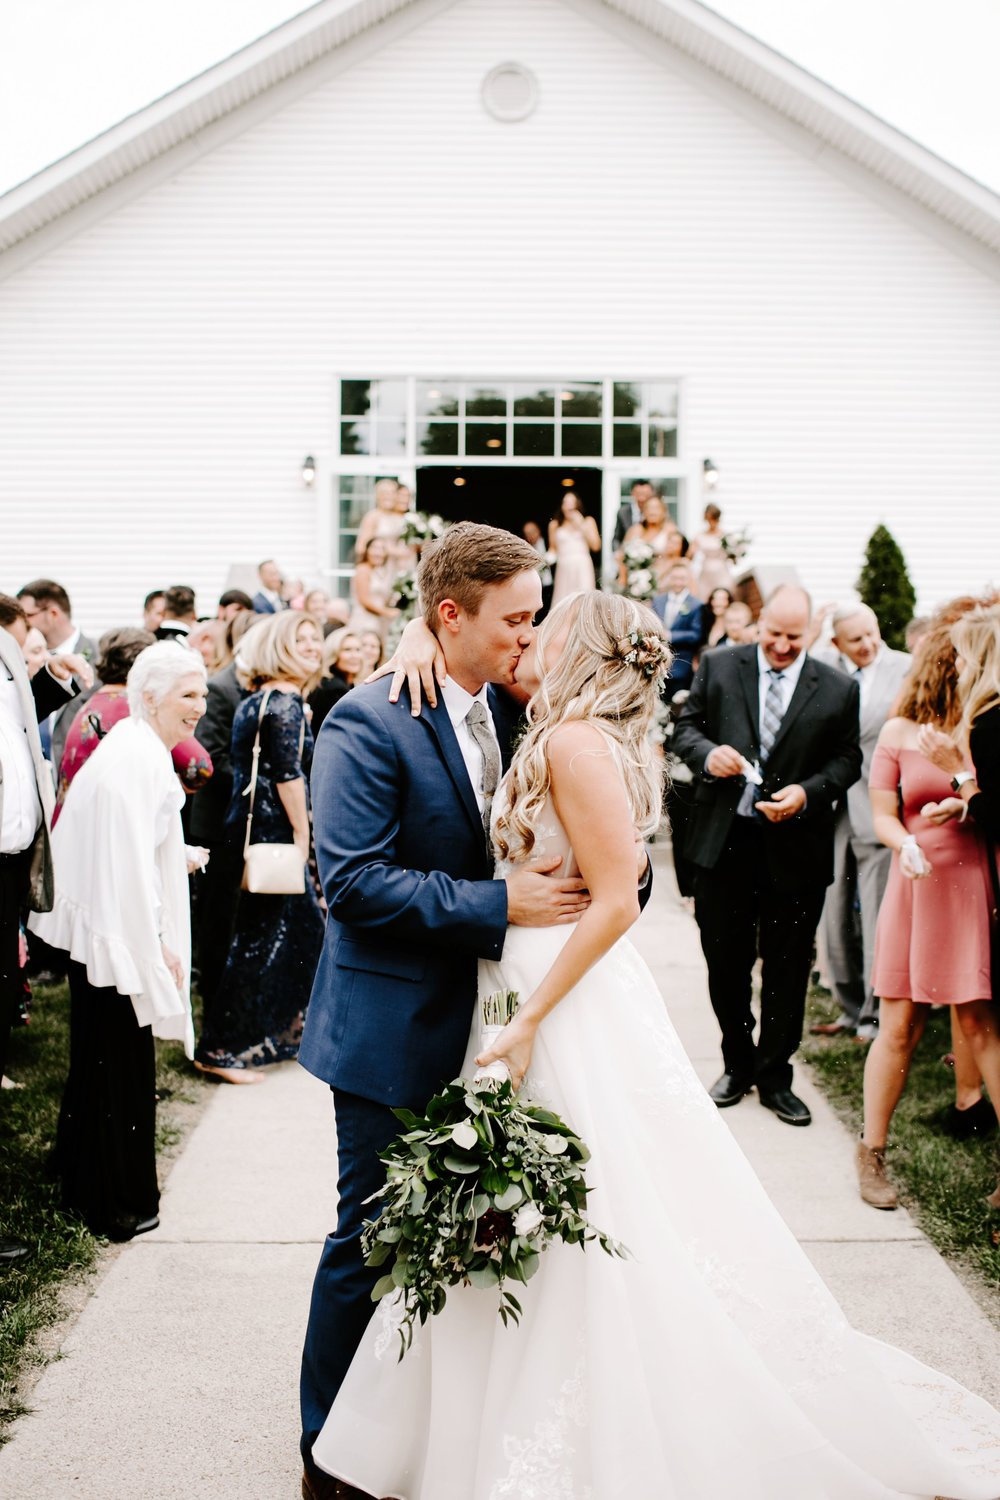 Katy and Michael Wedding at The Ritz Charles Garden Pavillion in Indianapolis Indiana by Emily Elyse Wehner Photography LLC-663.jpg